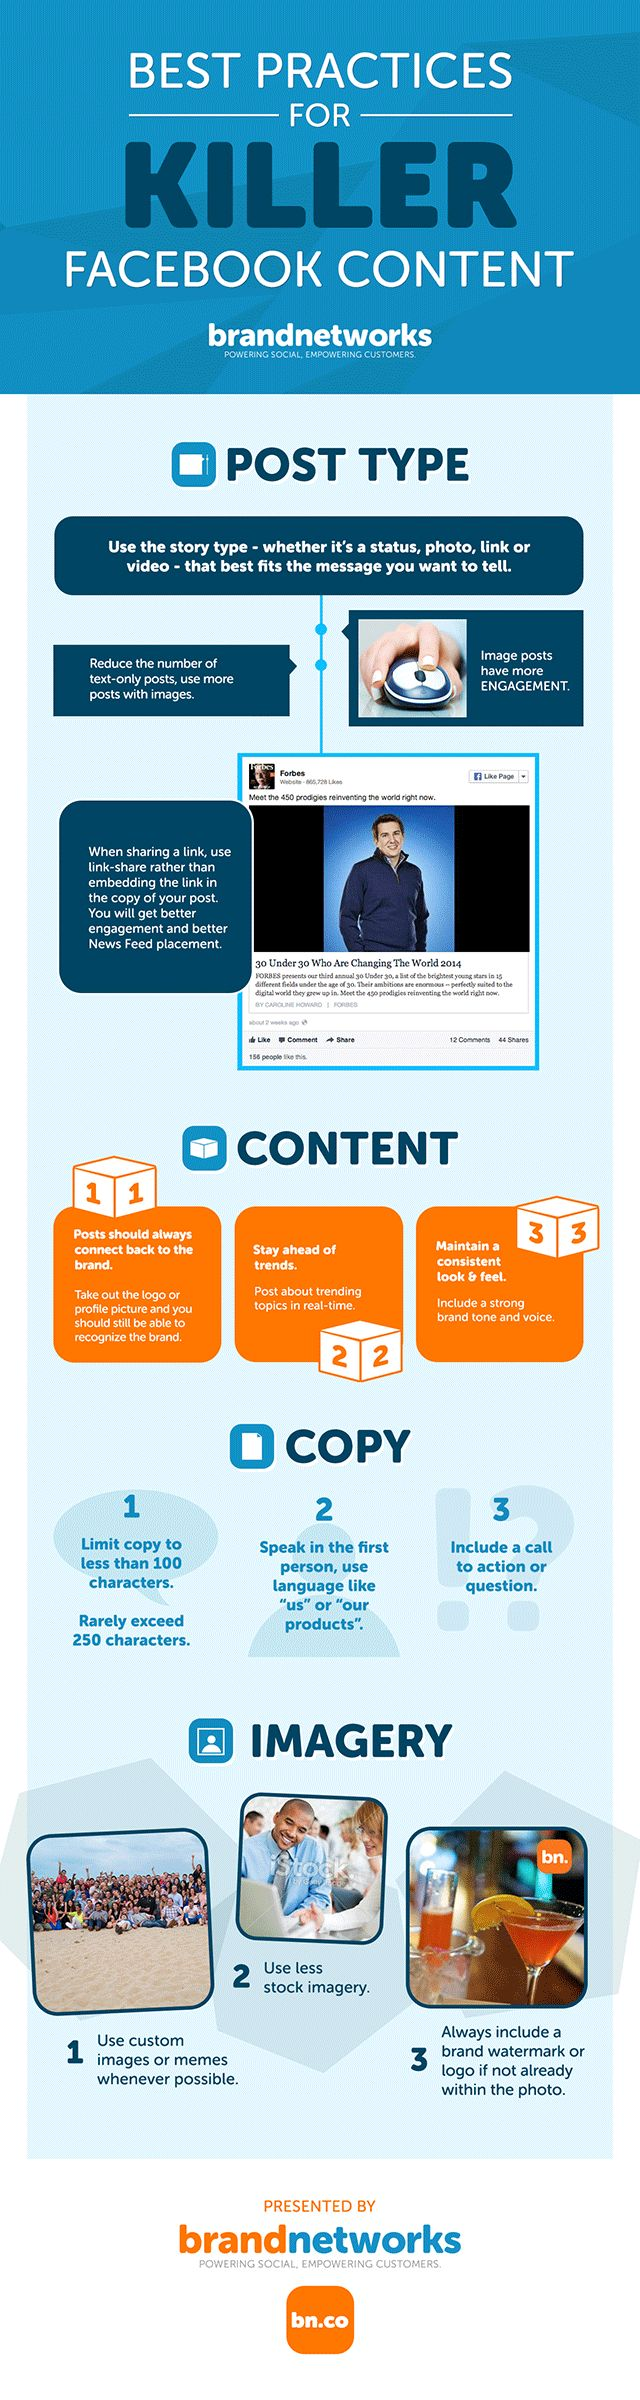 Best practices for killer FaceBook content #infografia #infographic #socialmedia